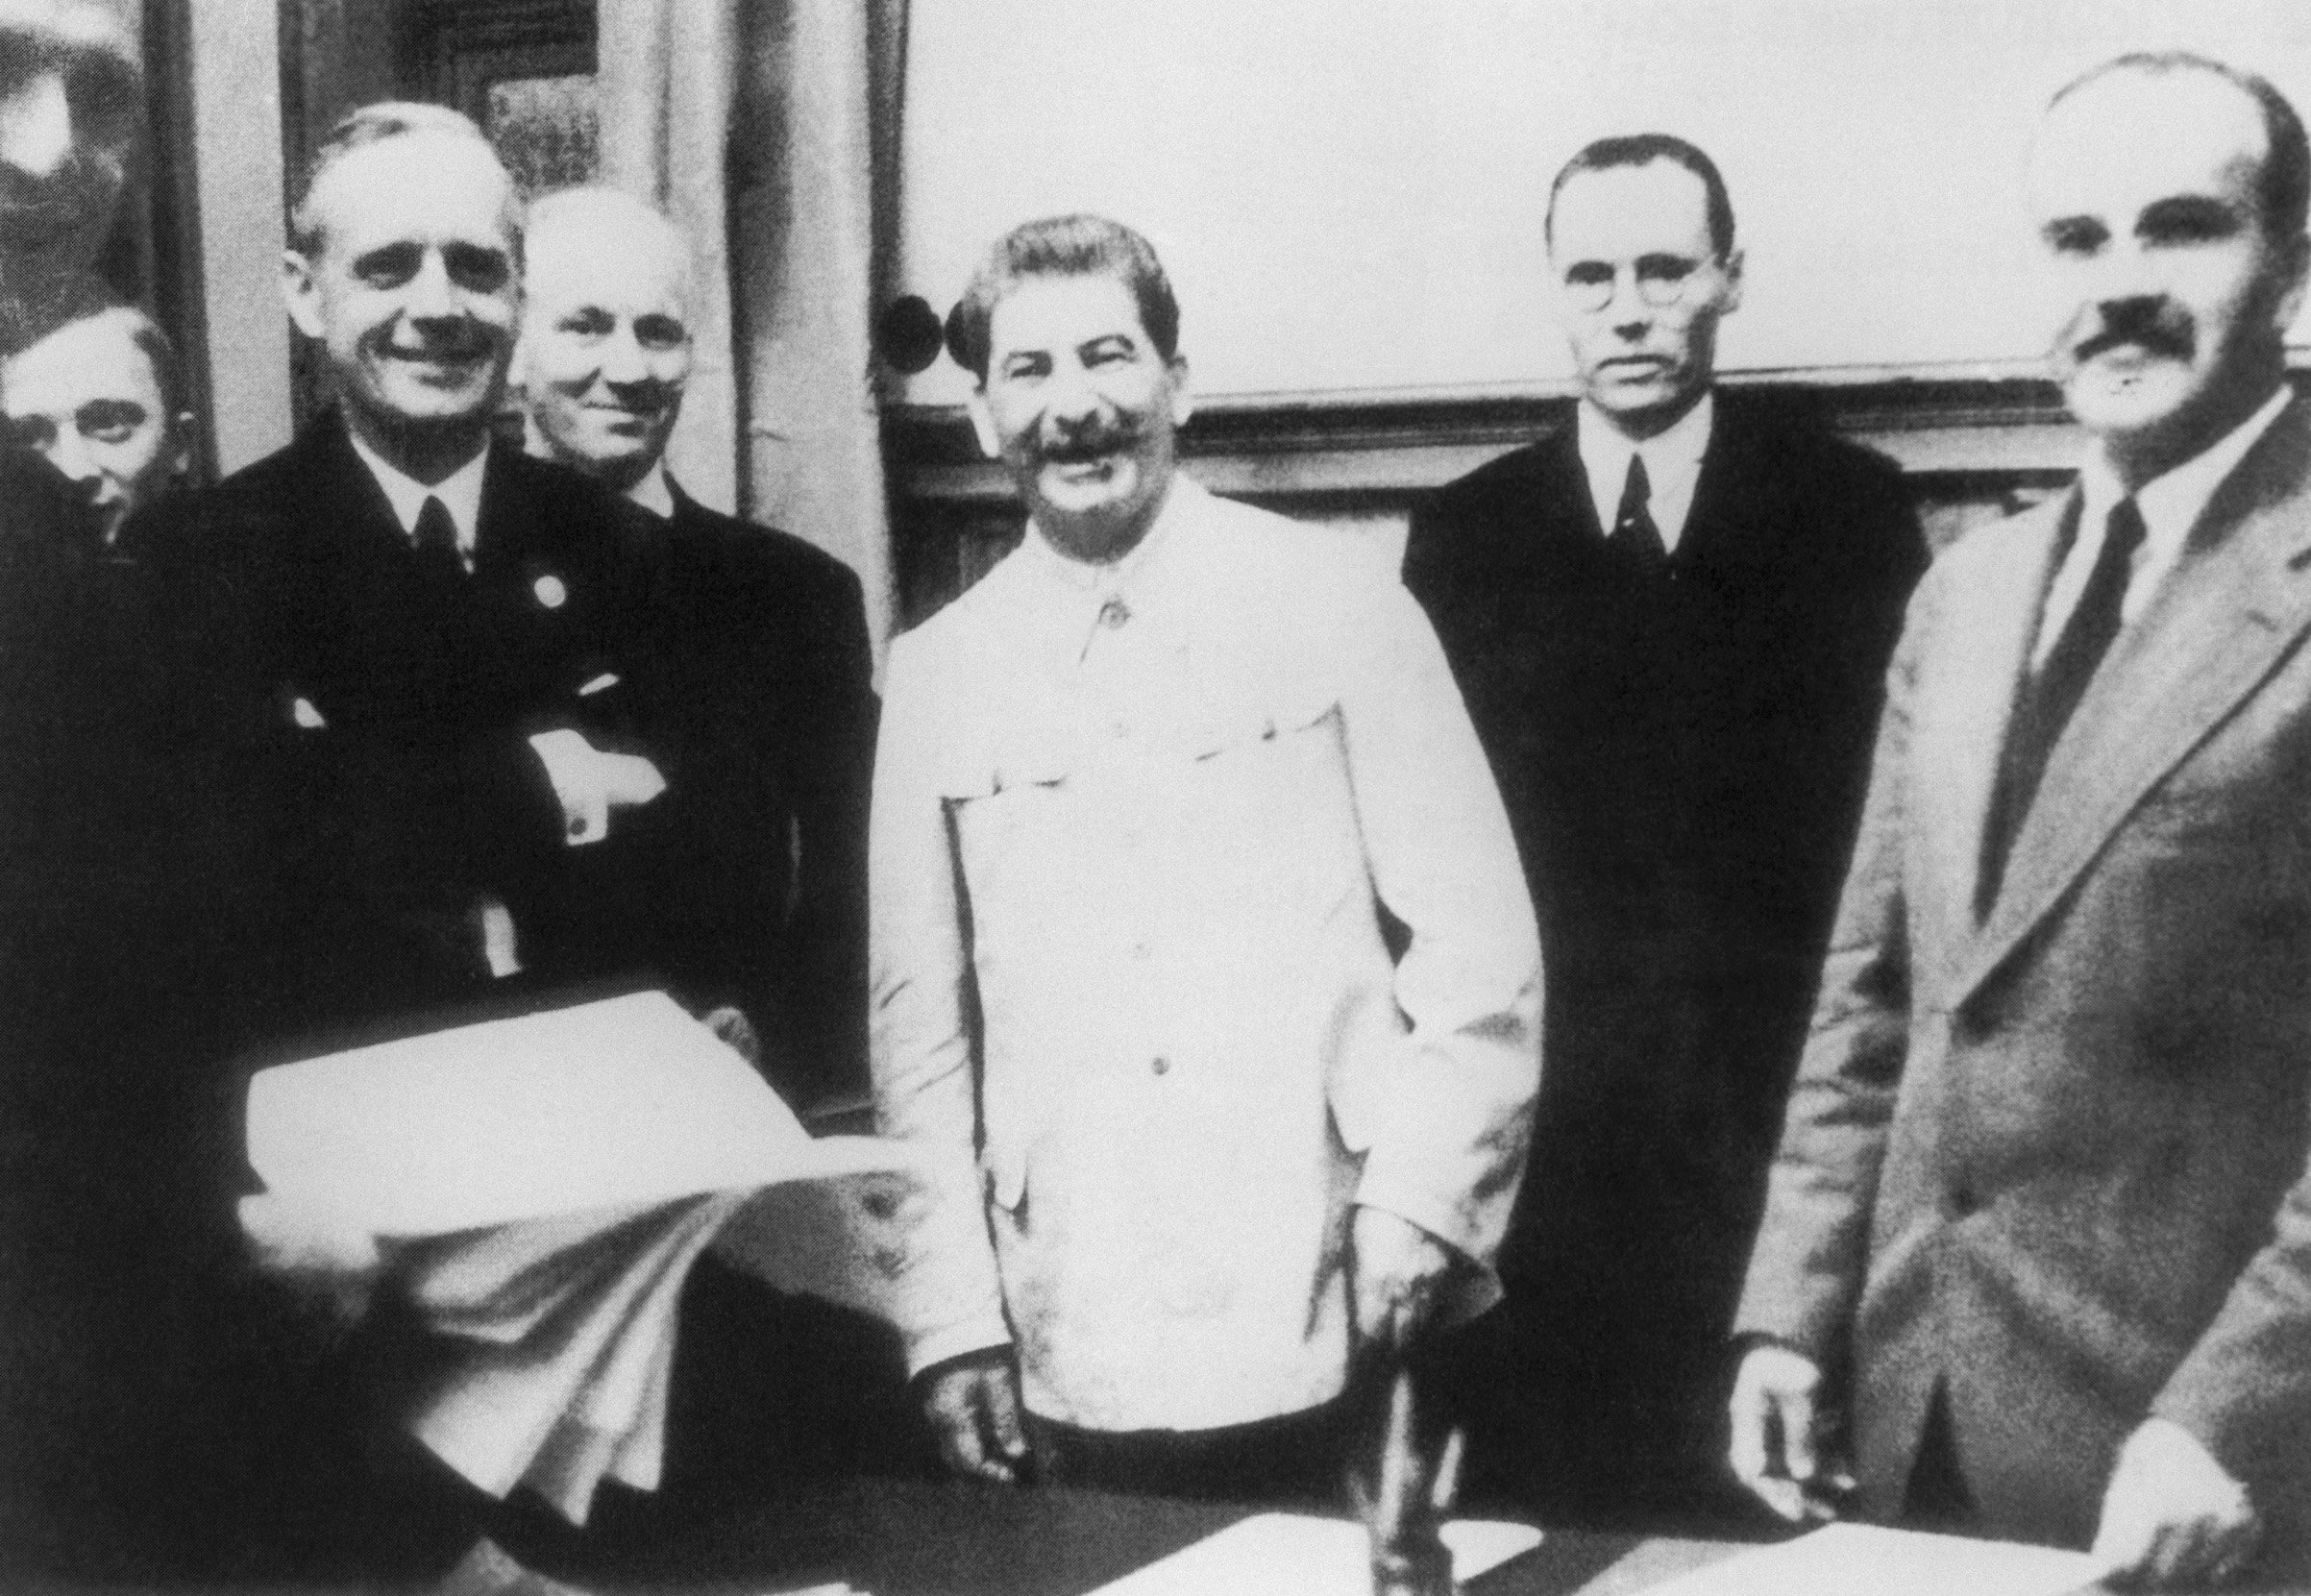 The Foreign Minister of Germany, Joachim von Ribbentrop, Soviet Leader Iosif (Joseph) Stalin and Soviet foreign minister Vyacheslav Molotov (foreground L-R) pose for a photo at the singing ceremony of the German-Soviet Treaty of Nonaggression, Aug. 23, 1939, in Moscow